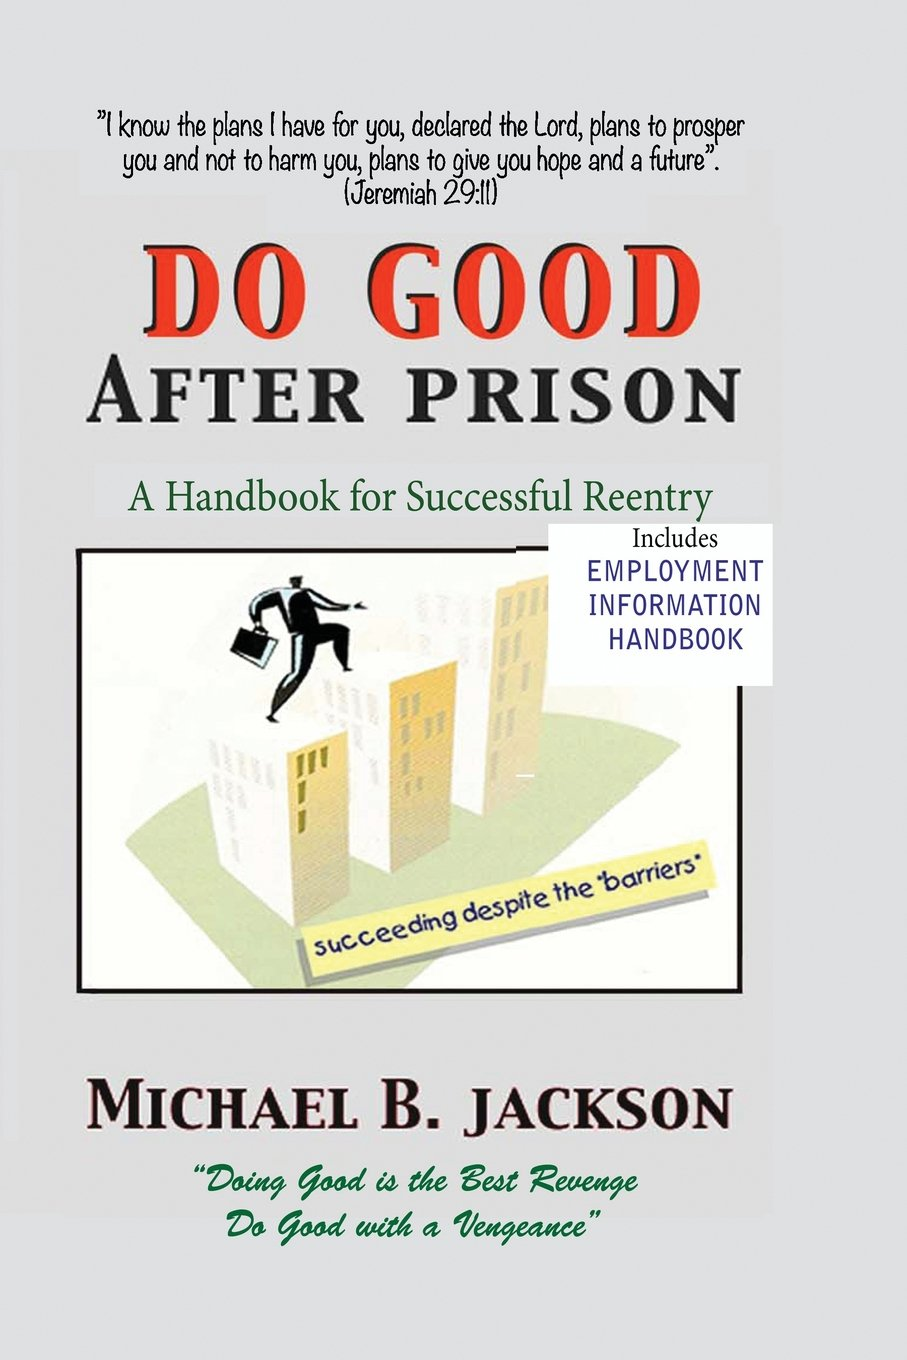 How To Do Good After Prison A Handbook For Successful Reentry W